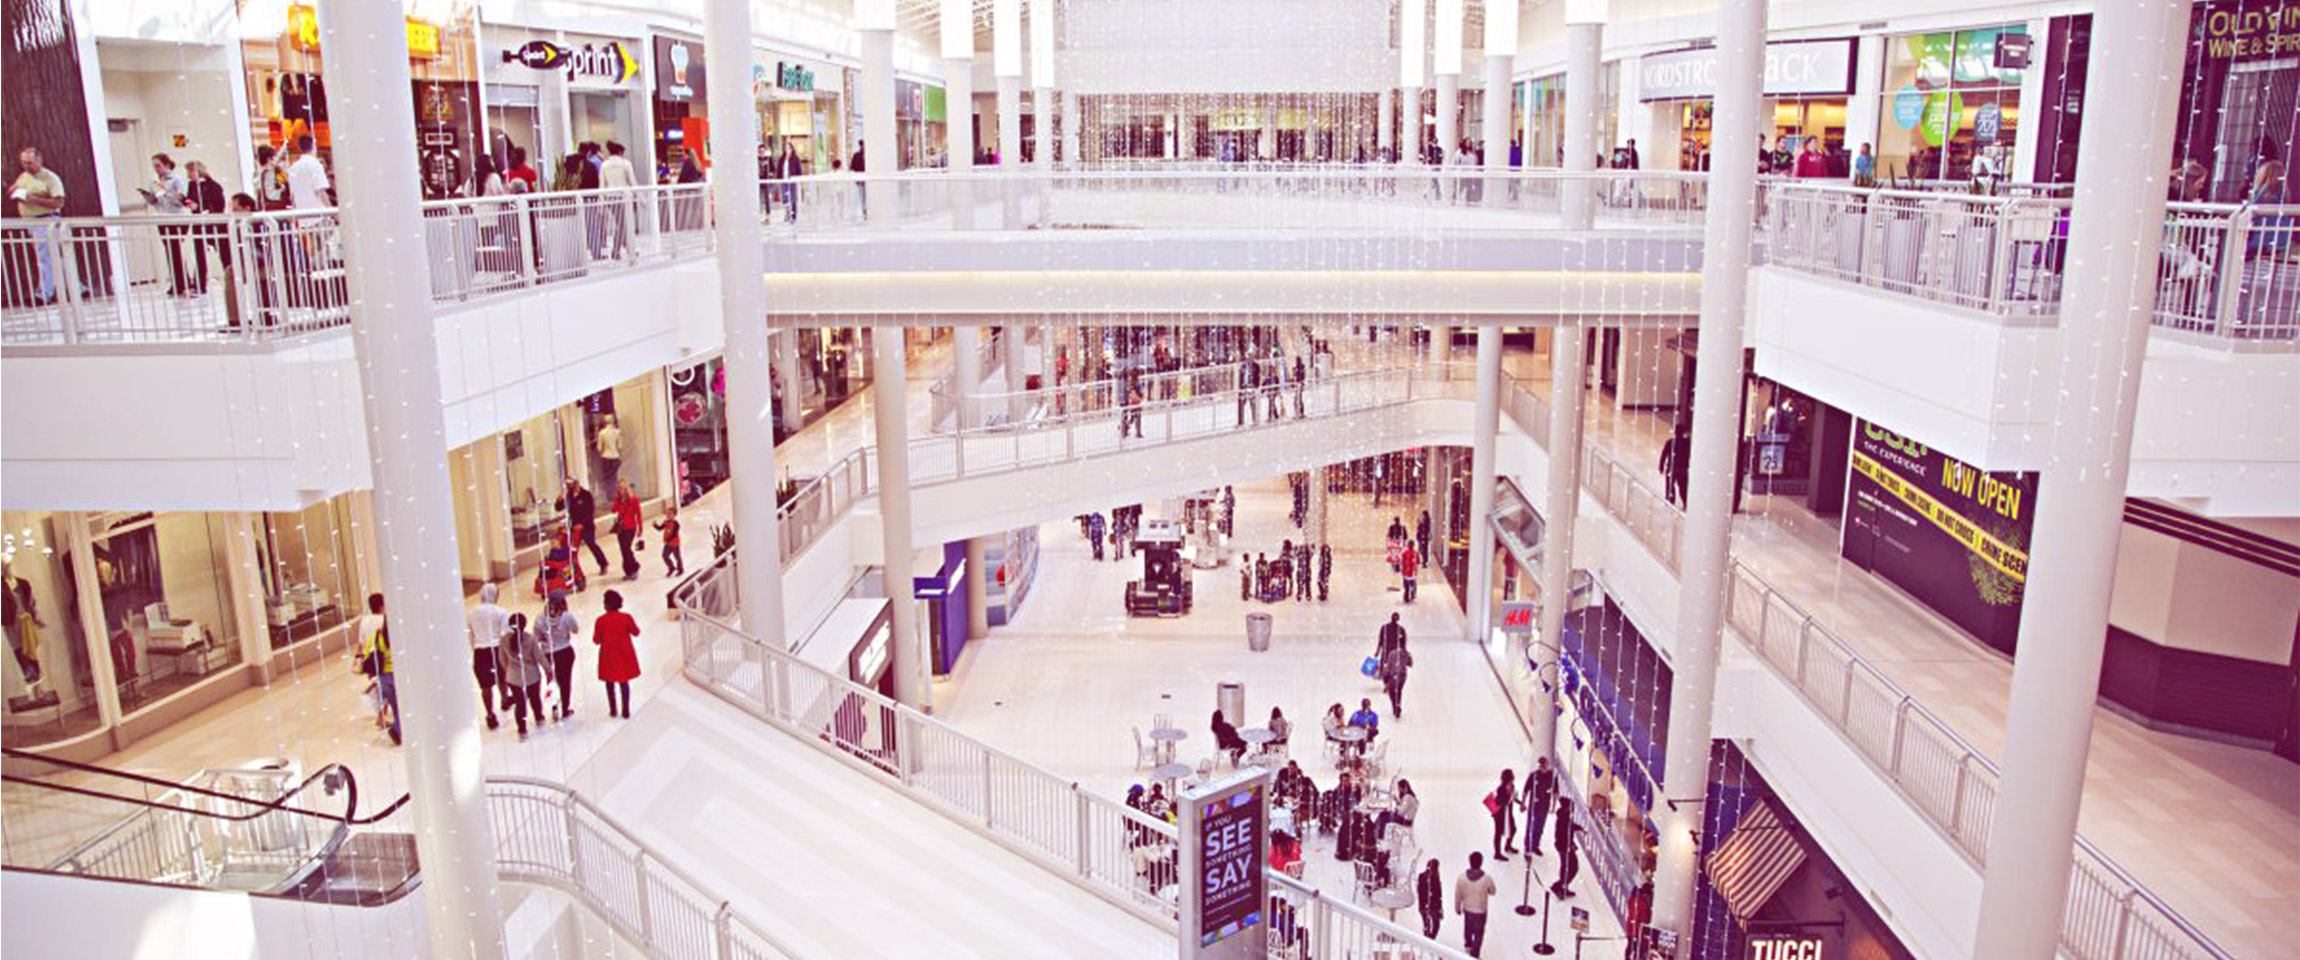 The New Mall Corporate Strategy: Health Hubs